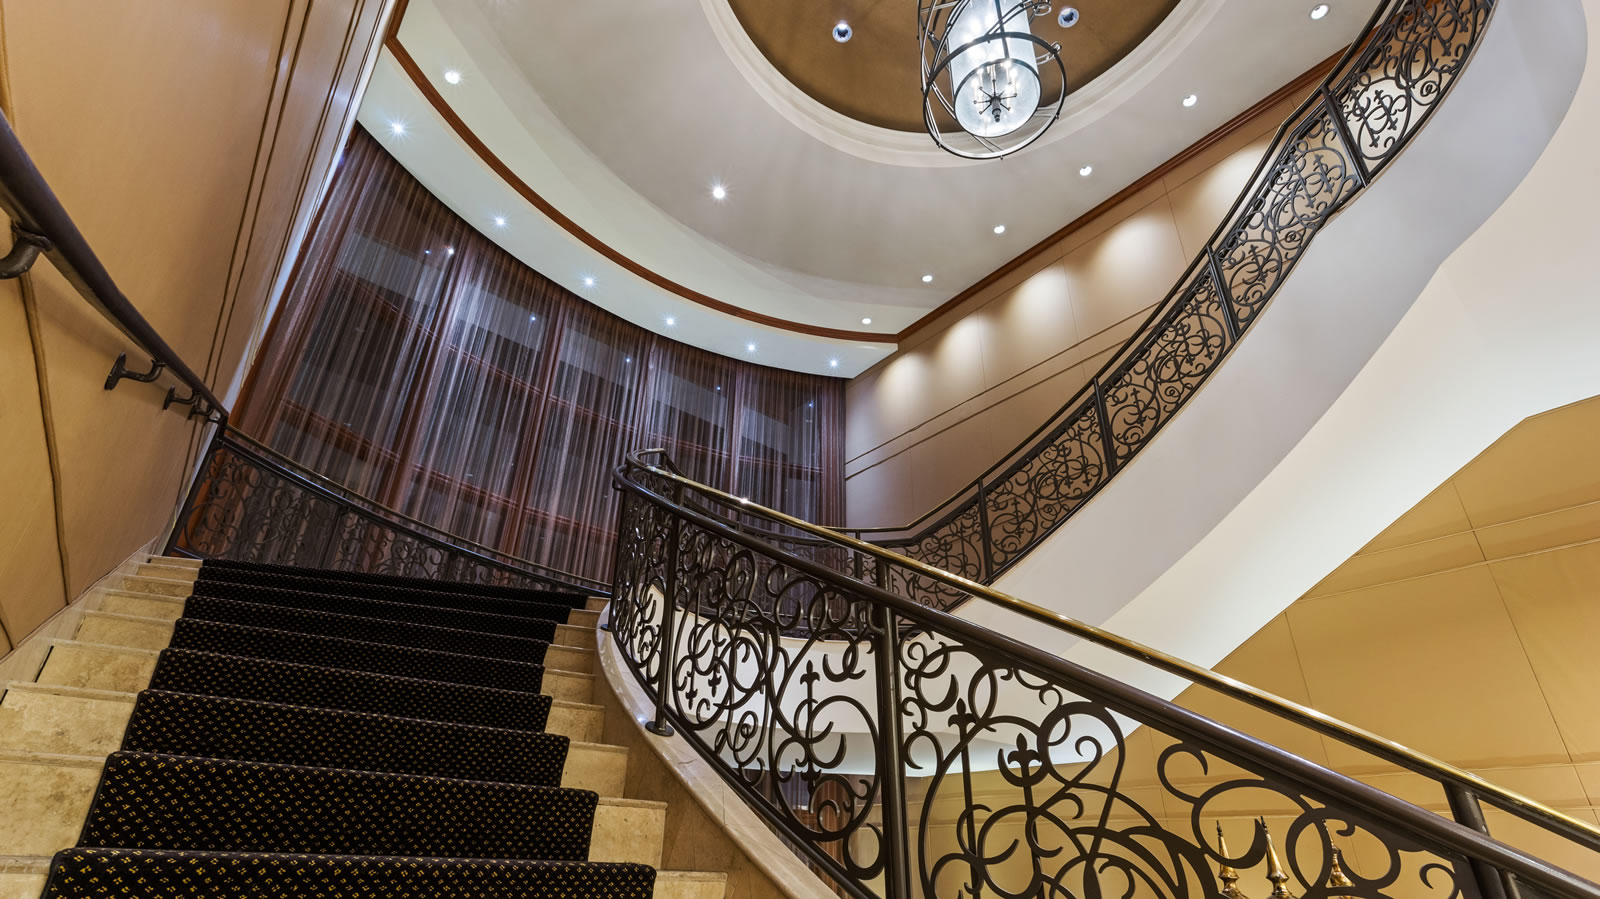 Staircase at New Orleans hotel